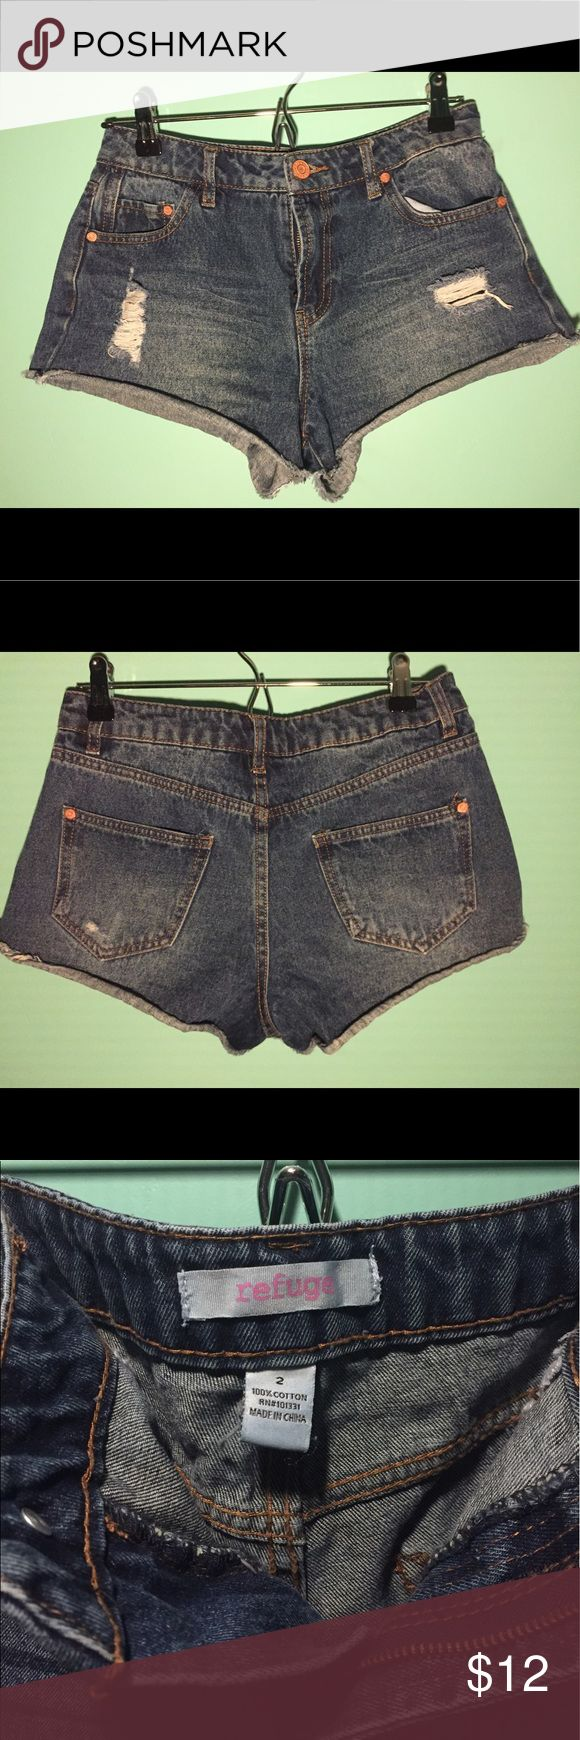 Charlotte Russe Distressed Denim Shorts Charlotte Russe Distressed Denim Shorts. Worn once. The hem rolls up a little, otherwise like new. Perfect for summer season and festivals! Any and all questions will be answered below within a half hour.   🏃FAST Shipping🏃 💵Offers Accepted💵 🤝Trades Accepted🤝 refuge Shorts Jean Shorts